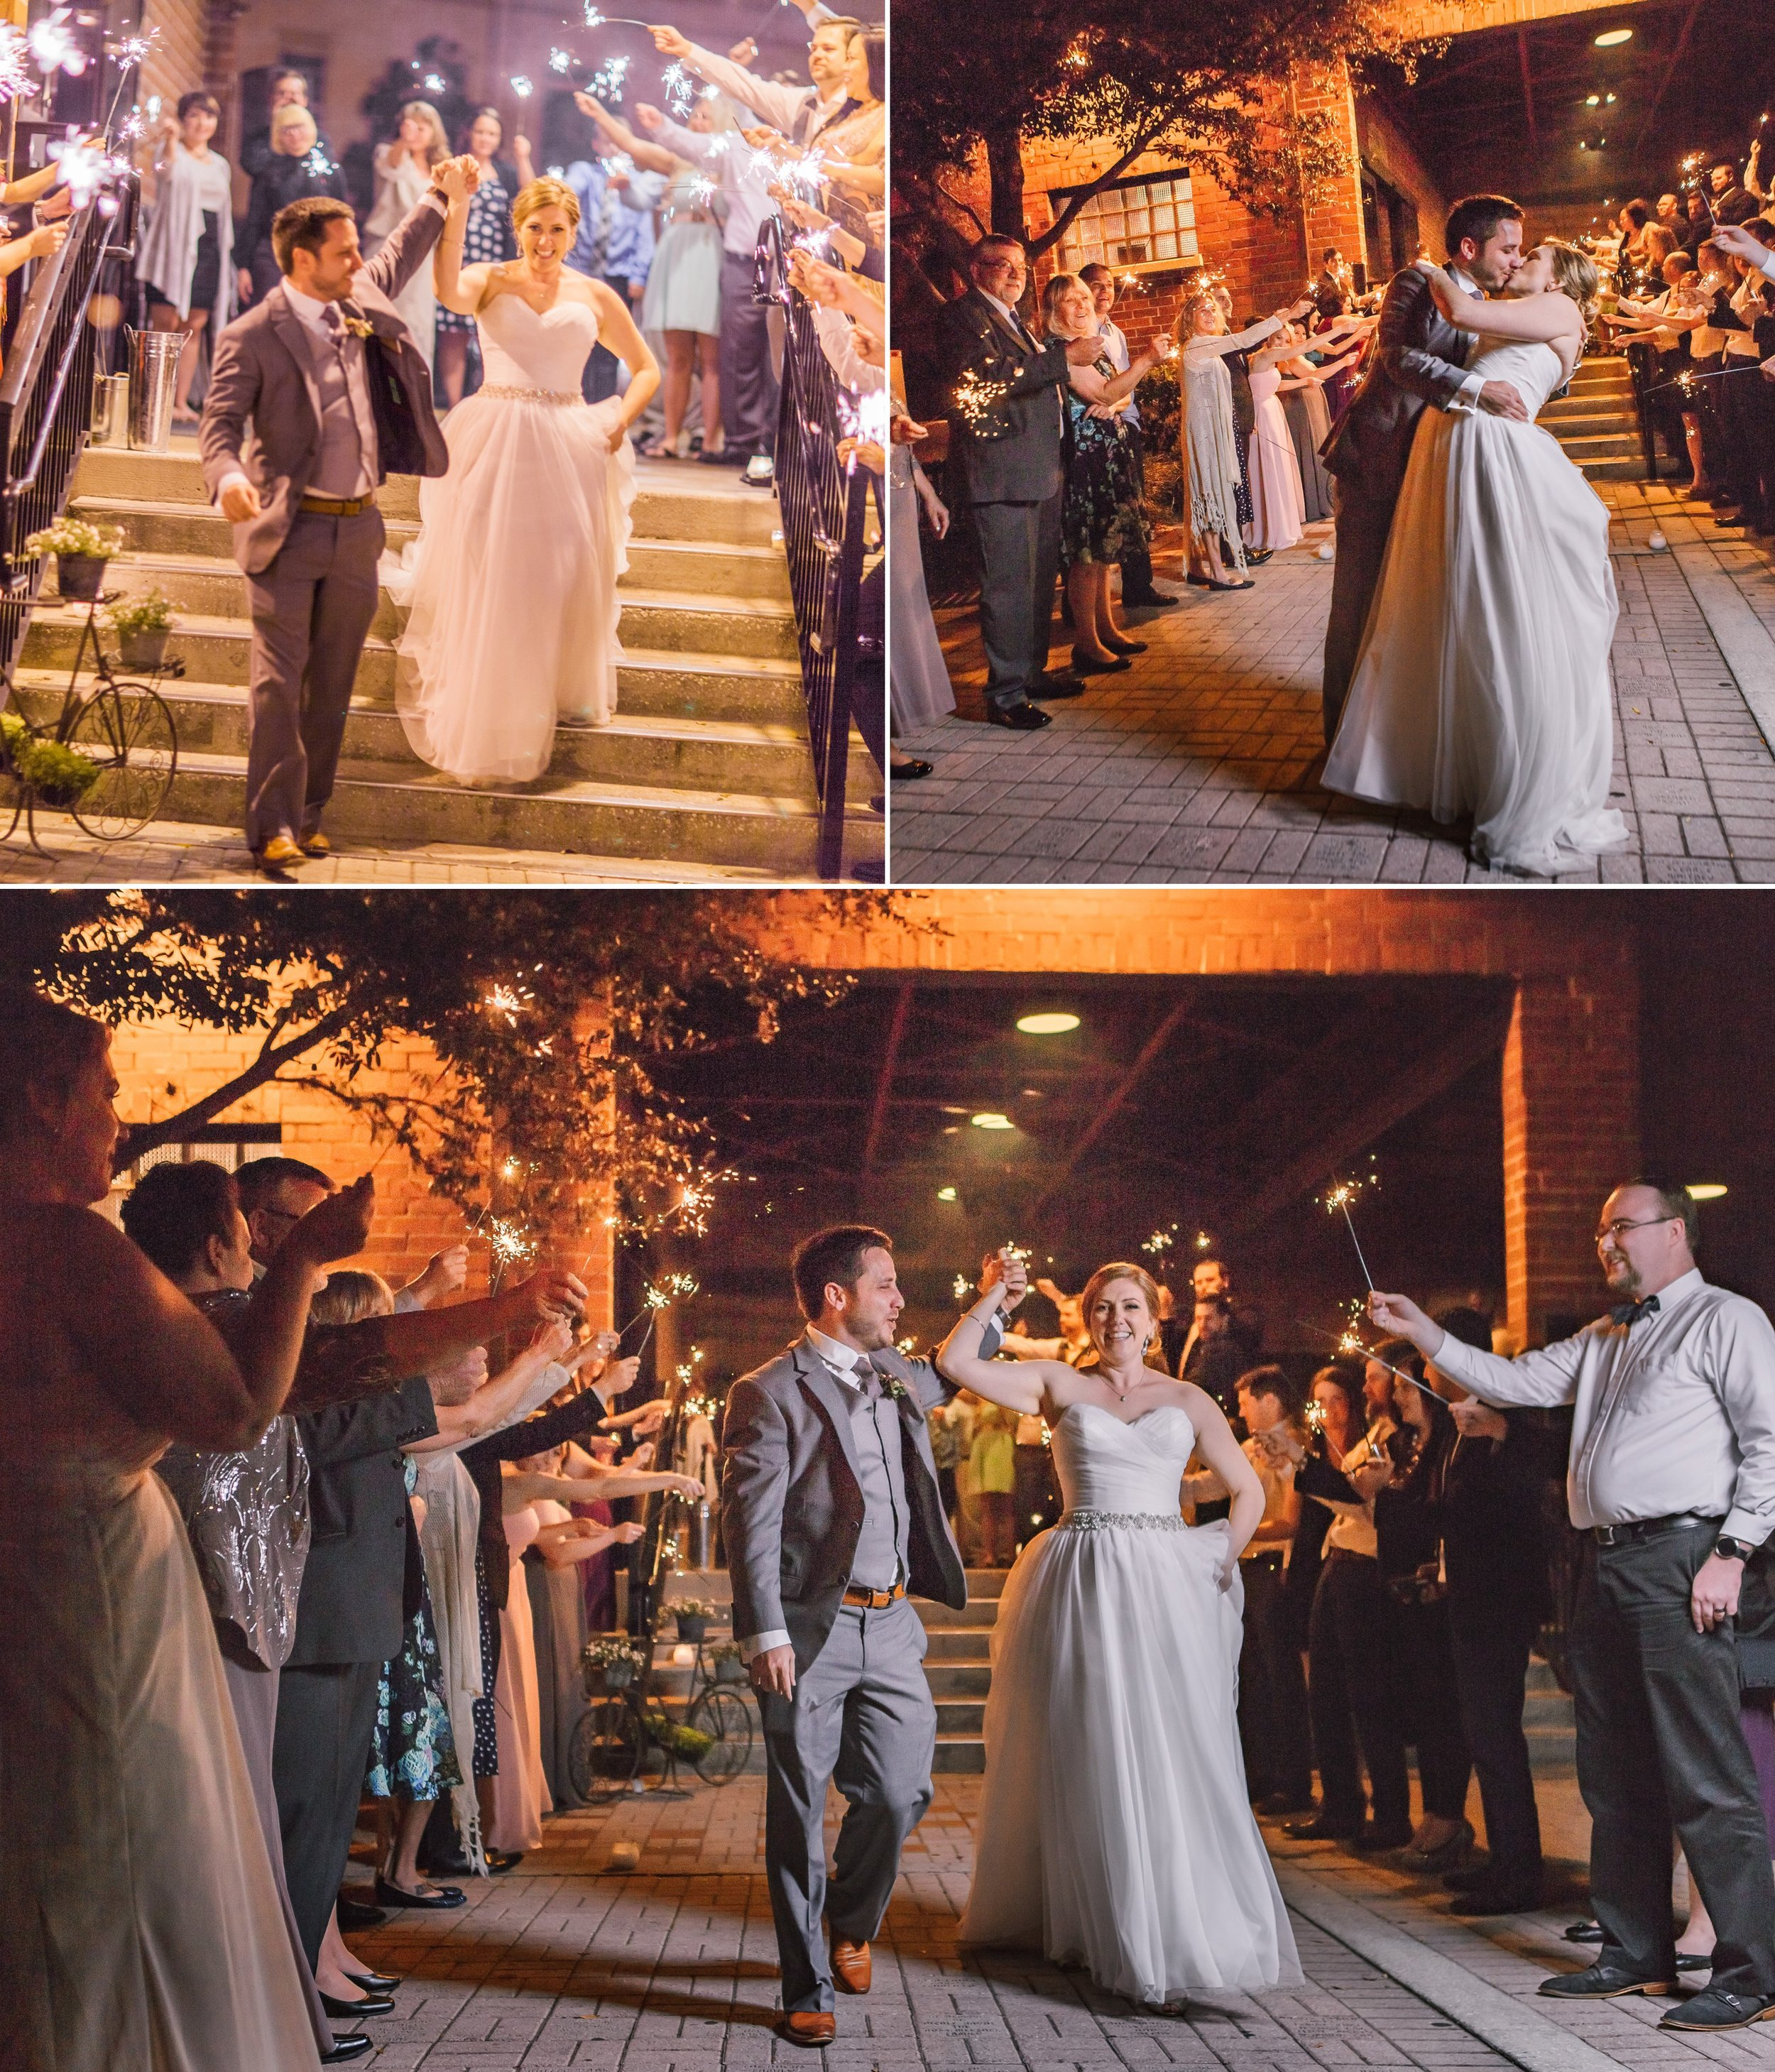 Winter Park Farmer's Market Sparkler grand exit send off at a Rustic Chic Gatsby themed Wedding Reception